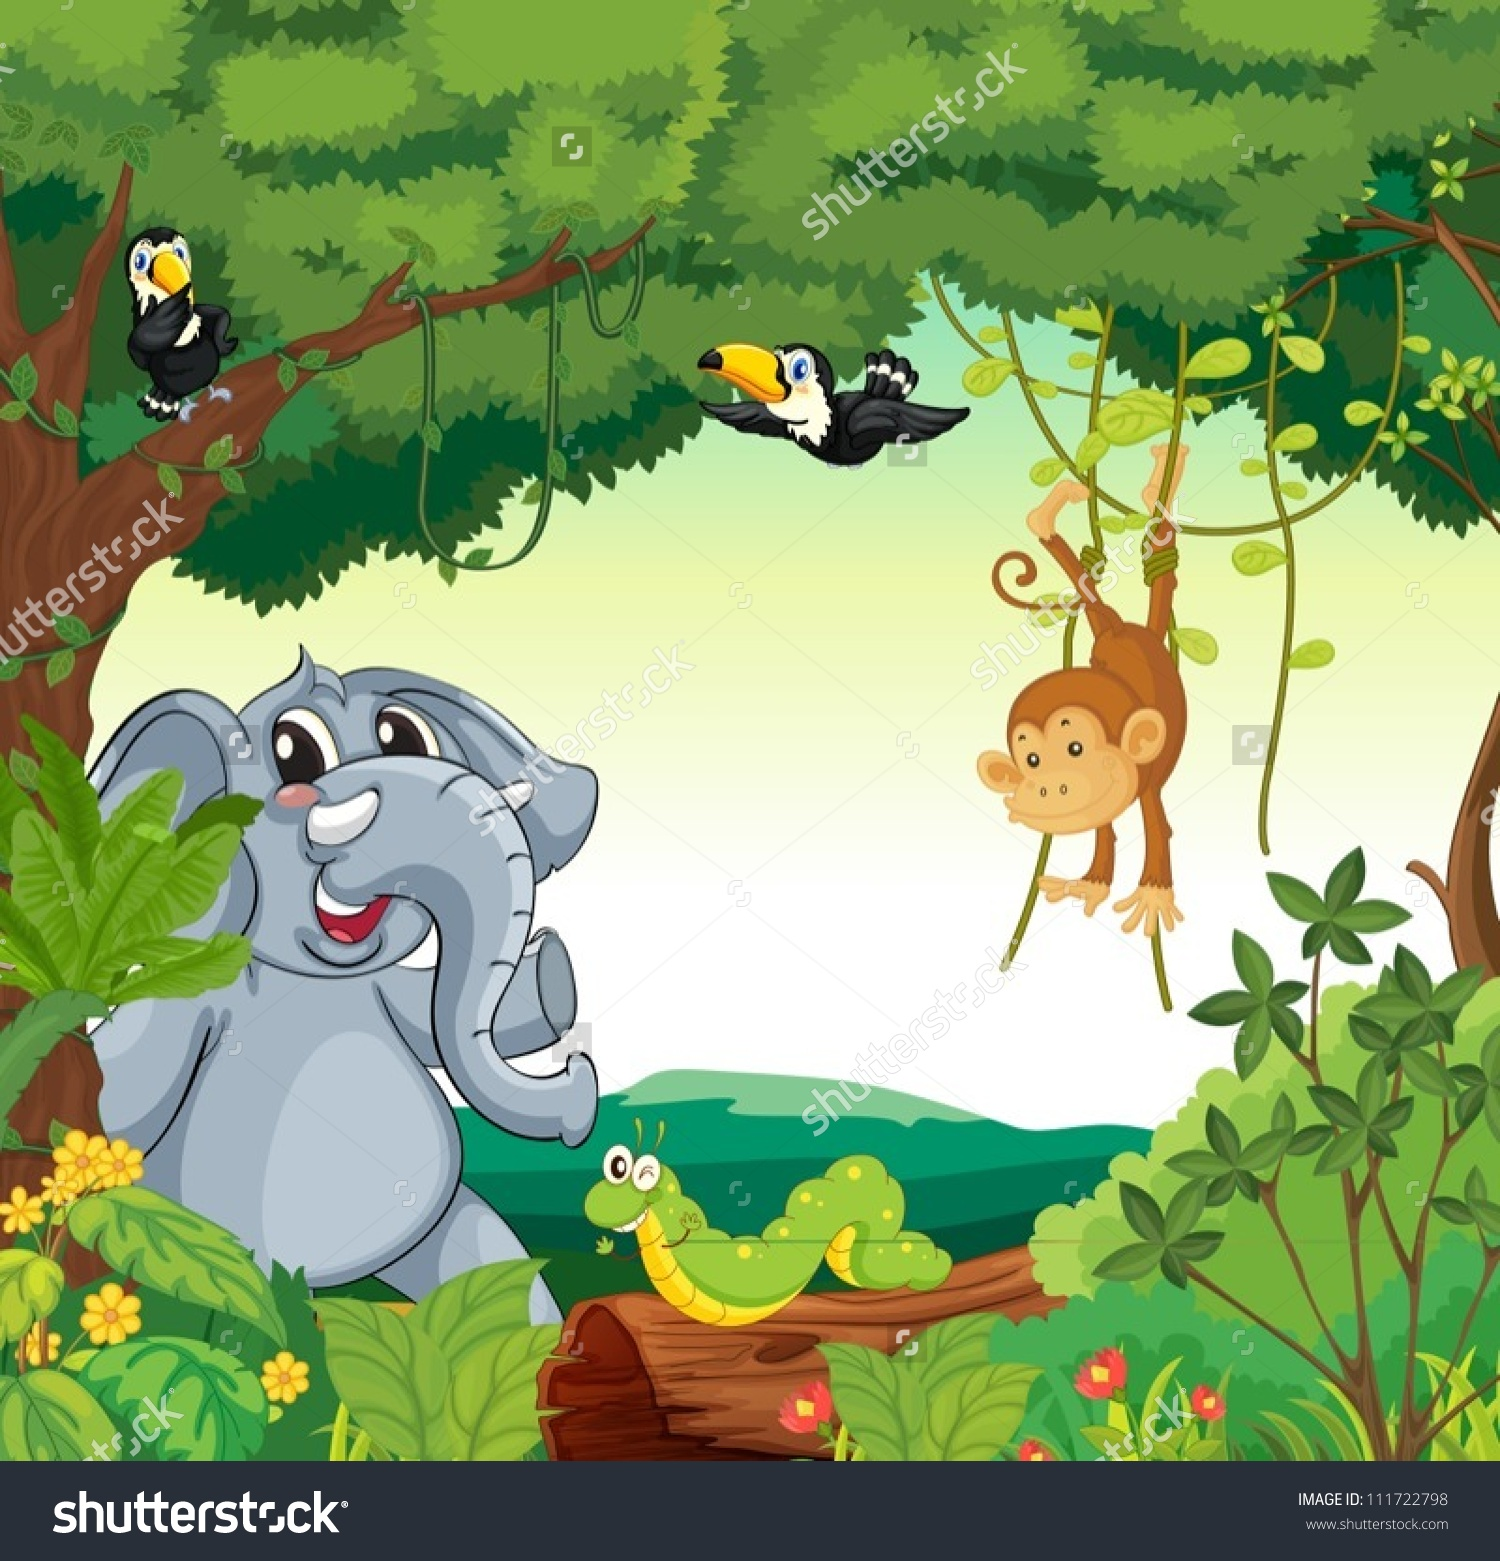 Jungle Forest Clip Art.